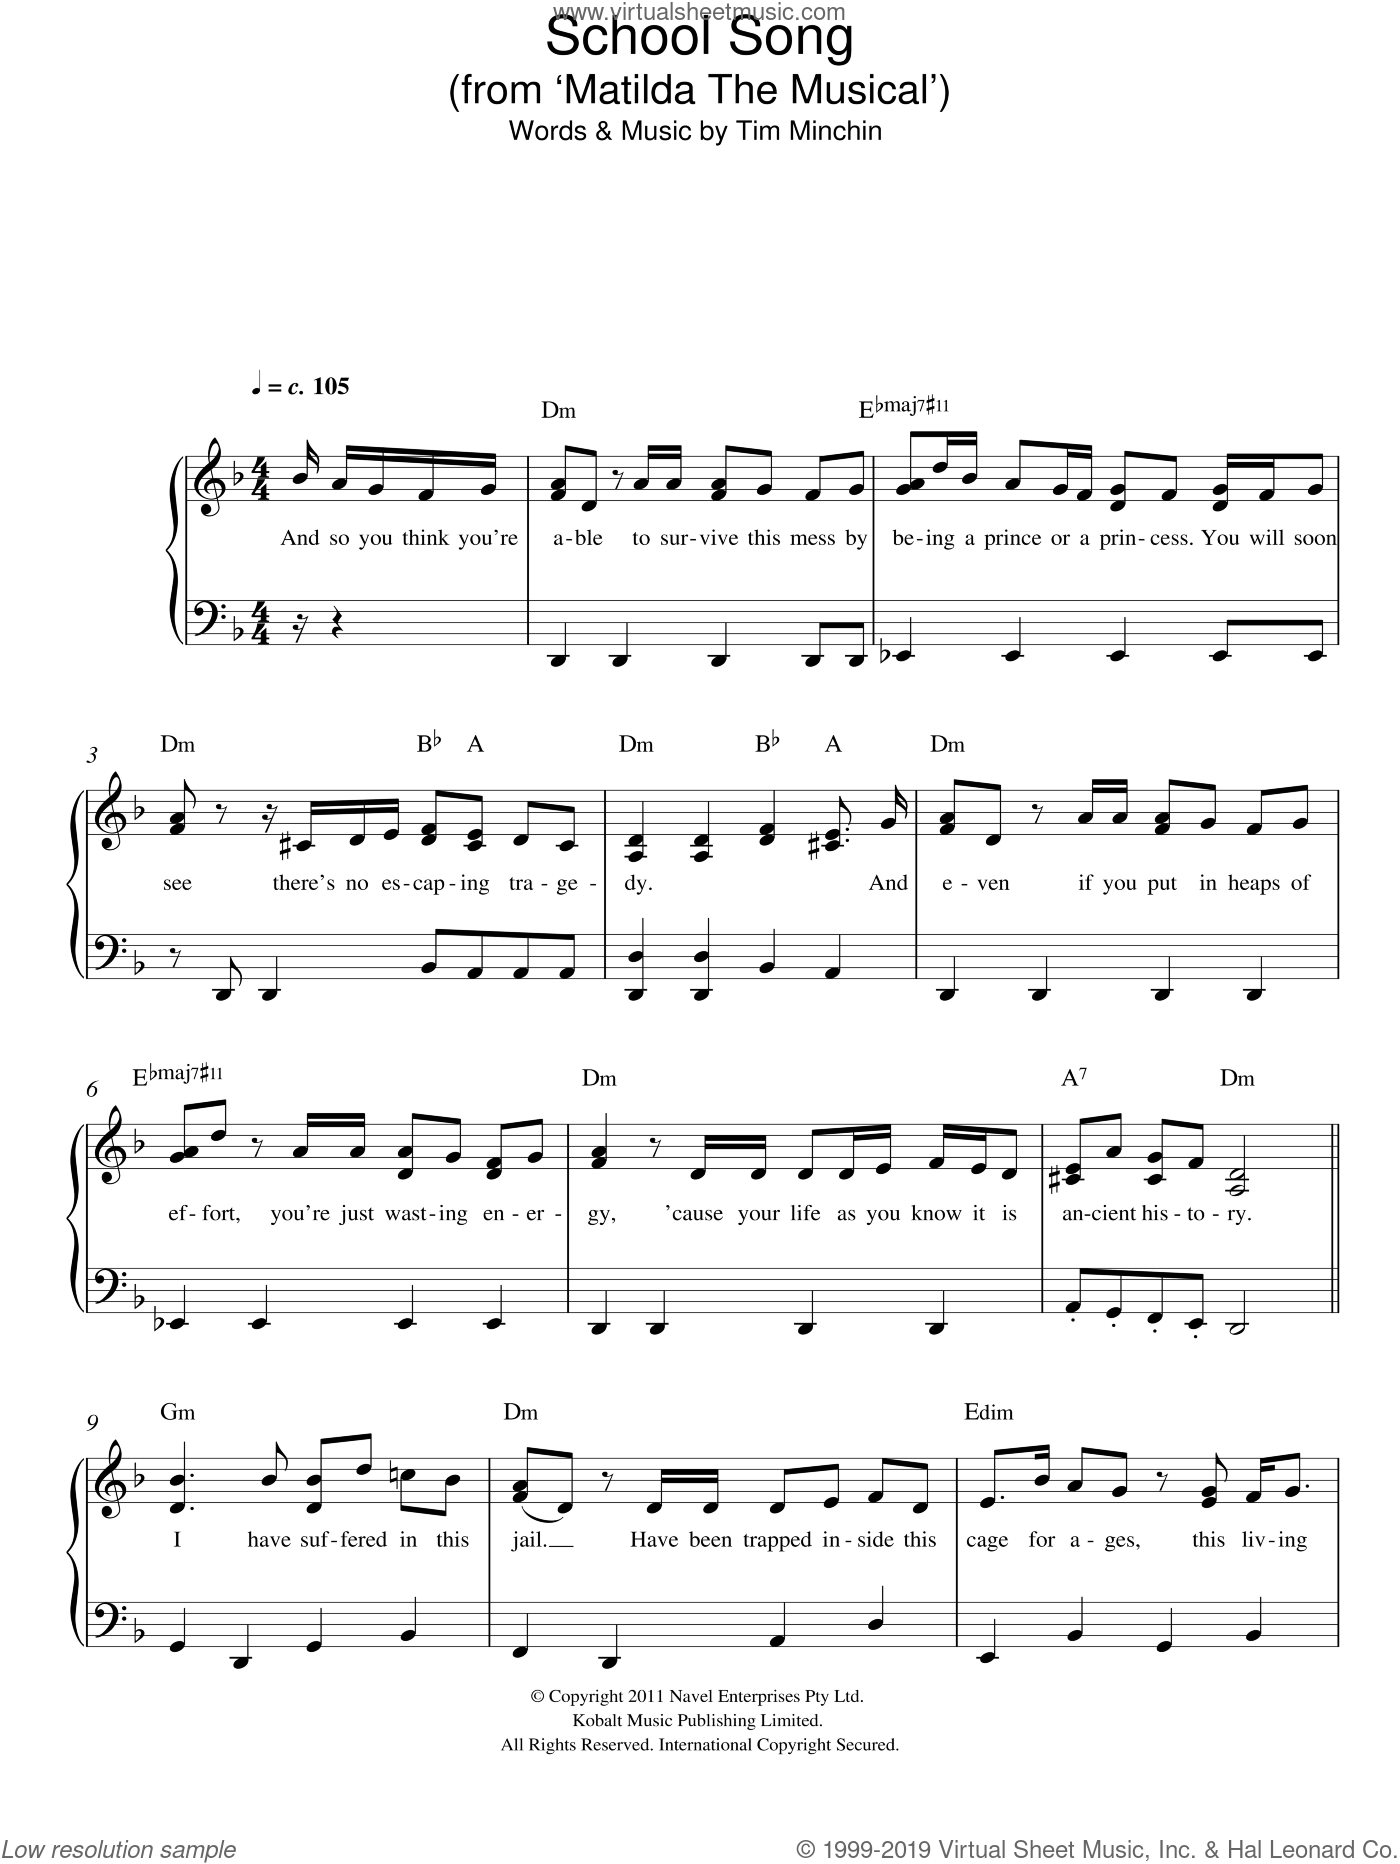 School Song (From 'Matilda The Musical') sheet music for piano solo by Tim Minchin